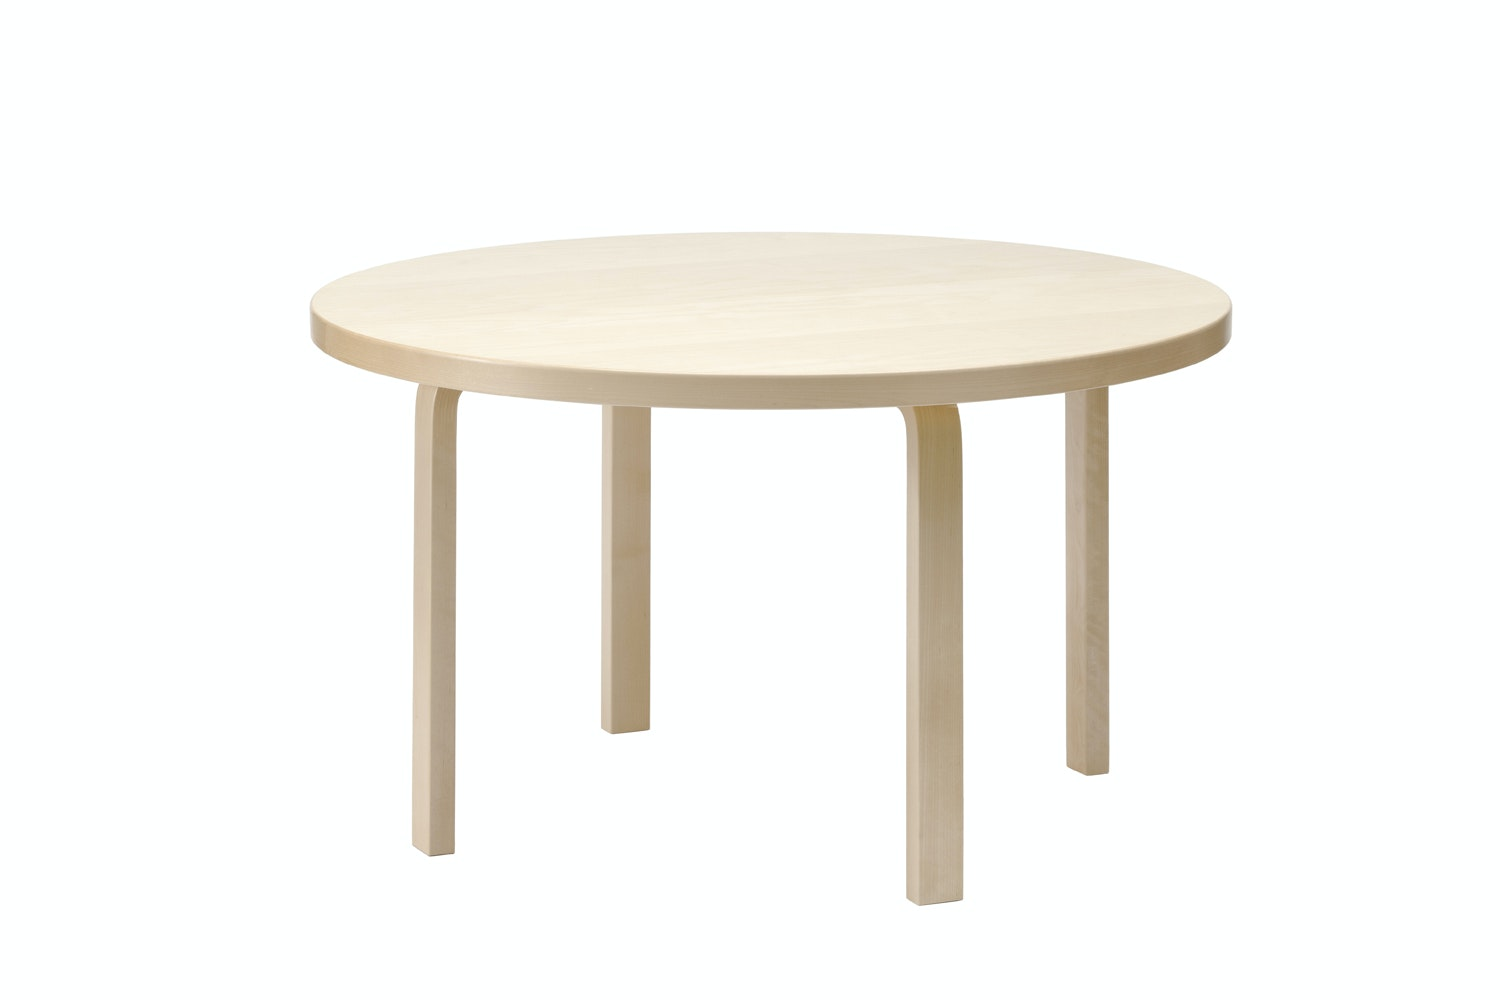 91 Table by Alvar Aalto for Artek